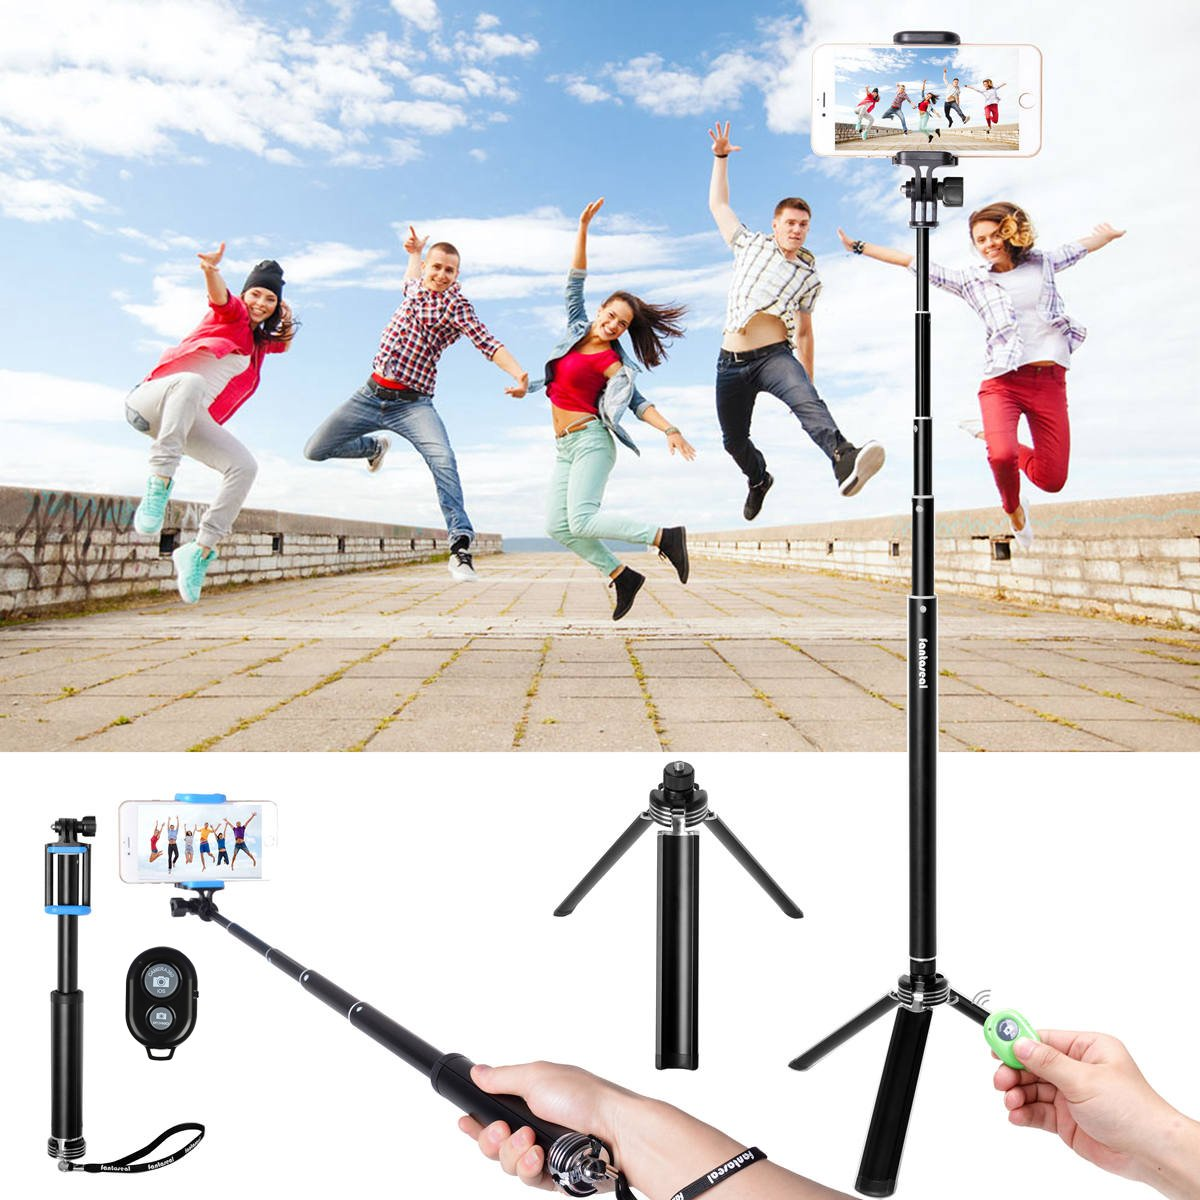 Fantaseal Selfie Stick Tripod, Camera Stand+ Hand Grip+ Selfie Pole+ Tripod 4-in-1 Transformer Stand Pole Selfie Monopod for iPhone Samsung Smartphone + GoPro Action Cam+ Compact Camera Selfie Stick